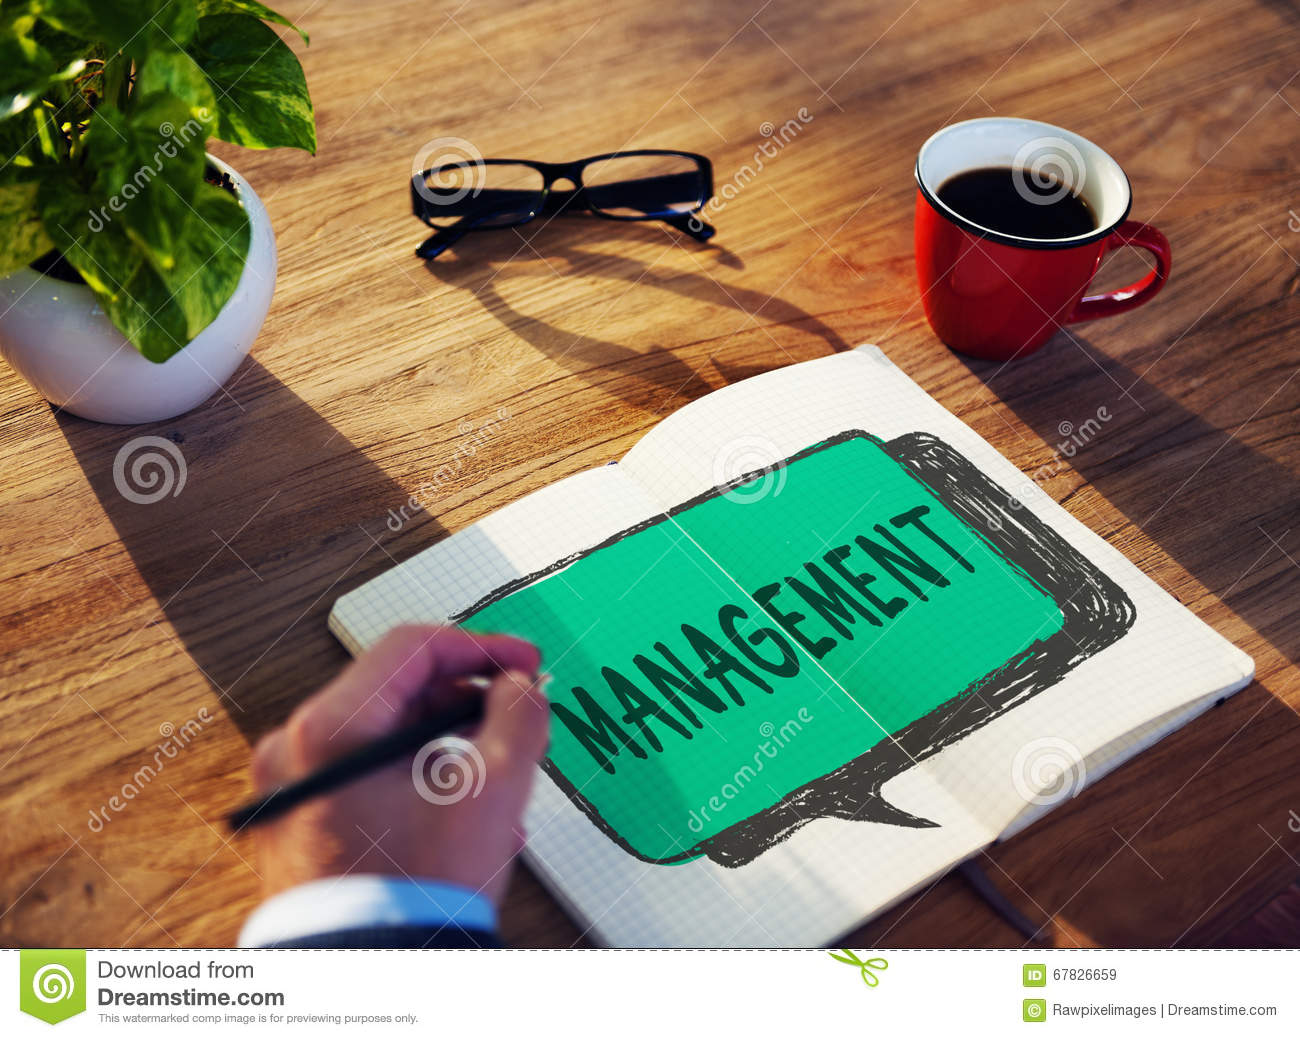 managing organization Management definition is - the act or art of managing : the conducting or supervising of something (such as a business) how to use management in a sentence the act or art of managing : the conducting or supervising of something (such as a business) judicious use of means to accomplish an end.